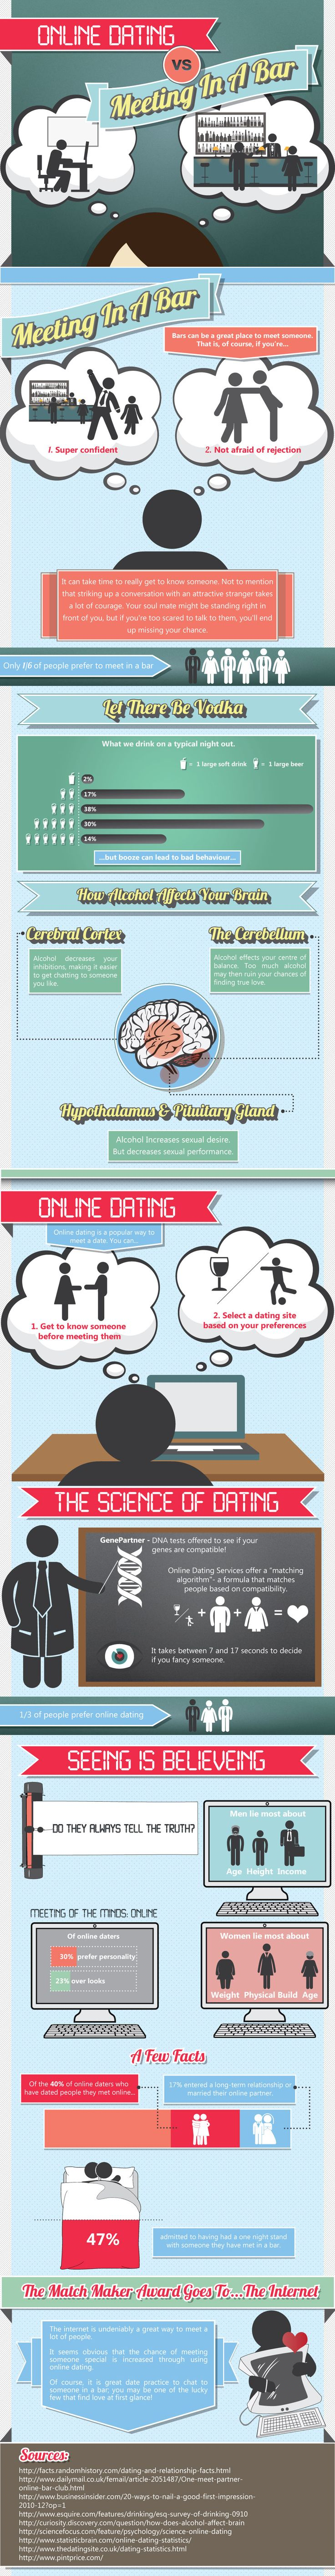 How to chat online dating tips